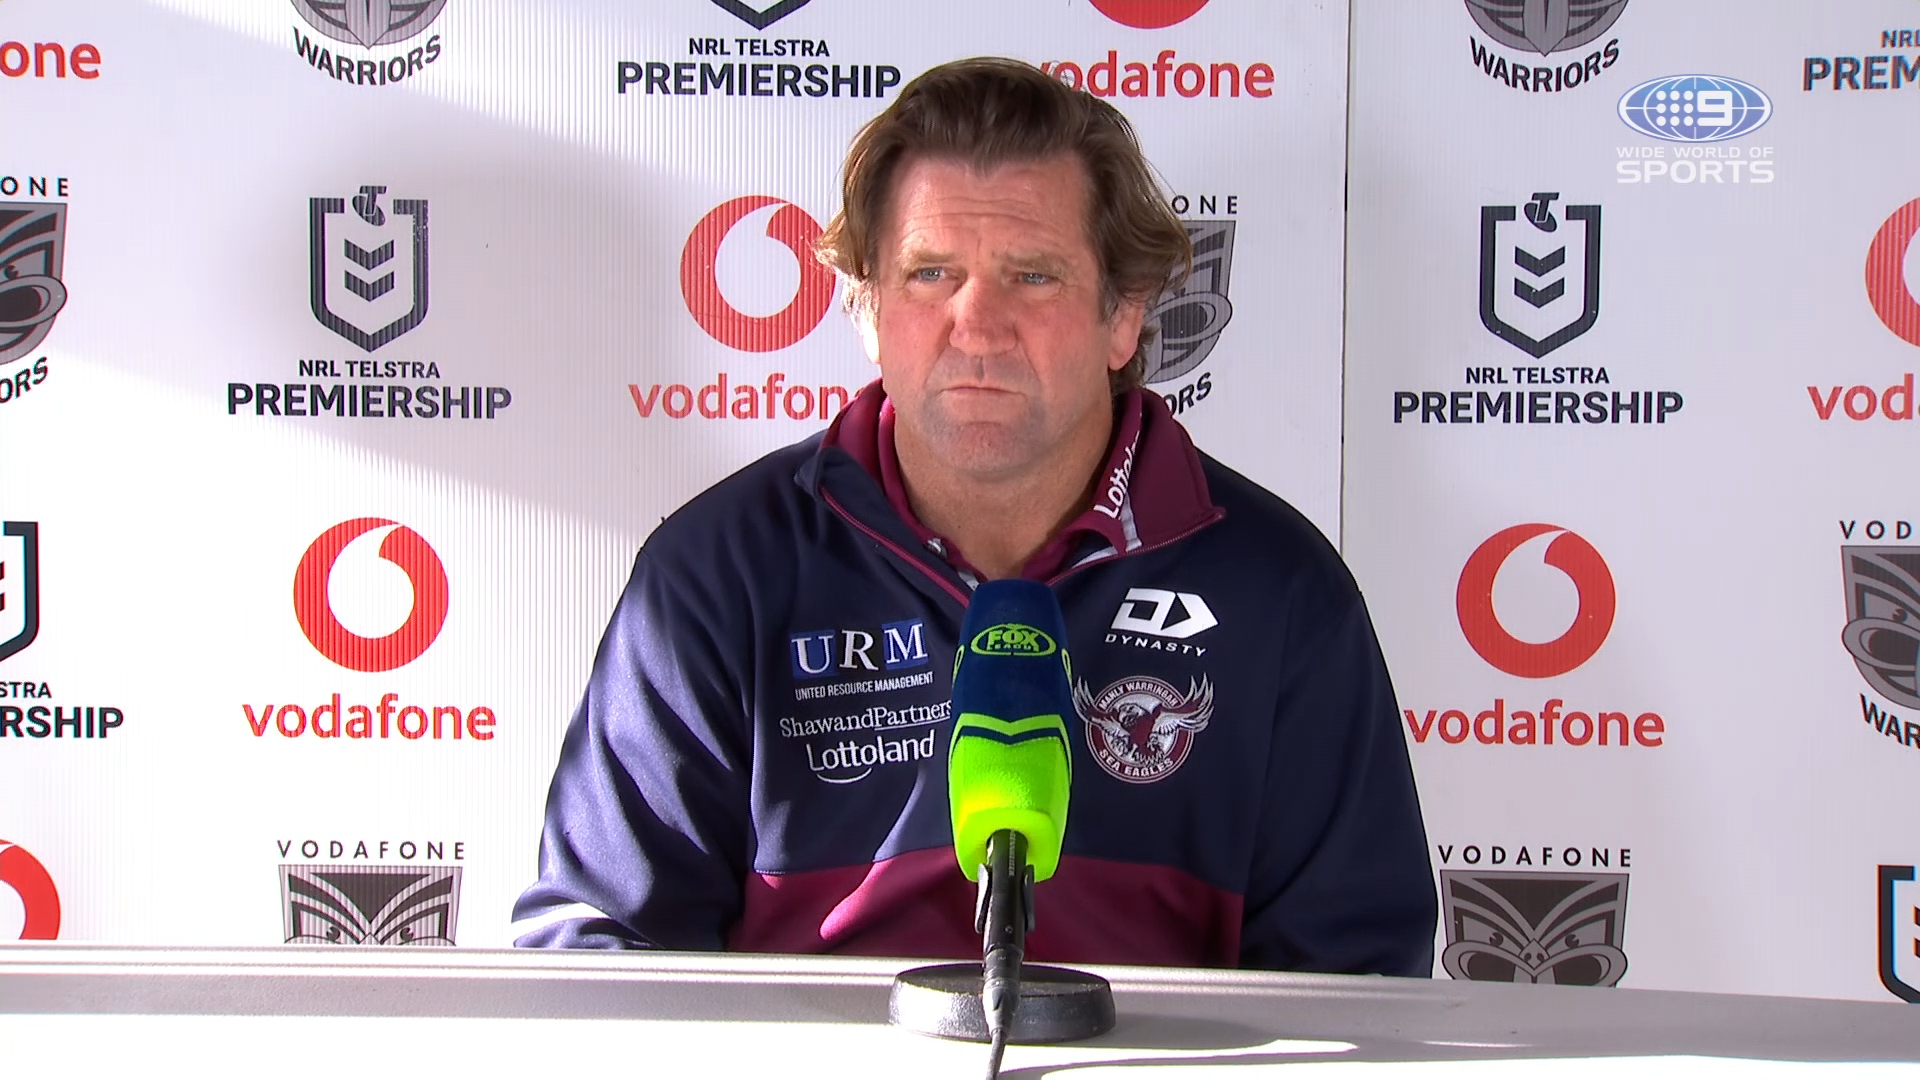 NRL Presser: Warriors v Sea Eagles - Round 20: Des Hasler